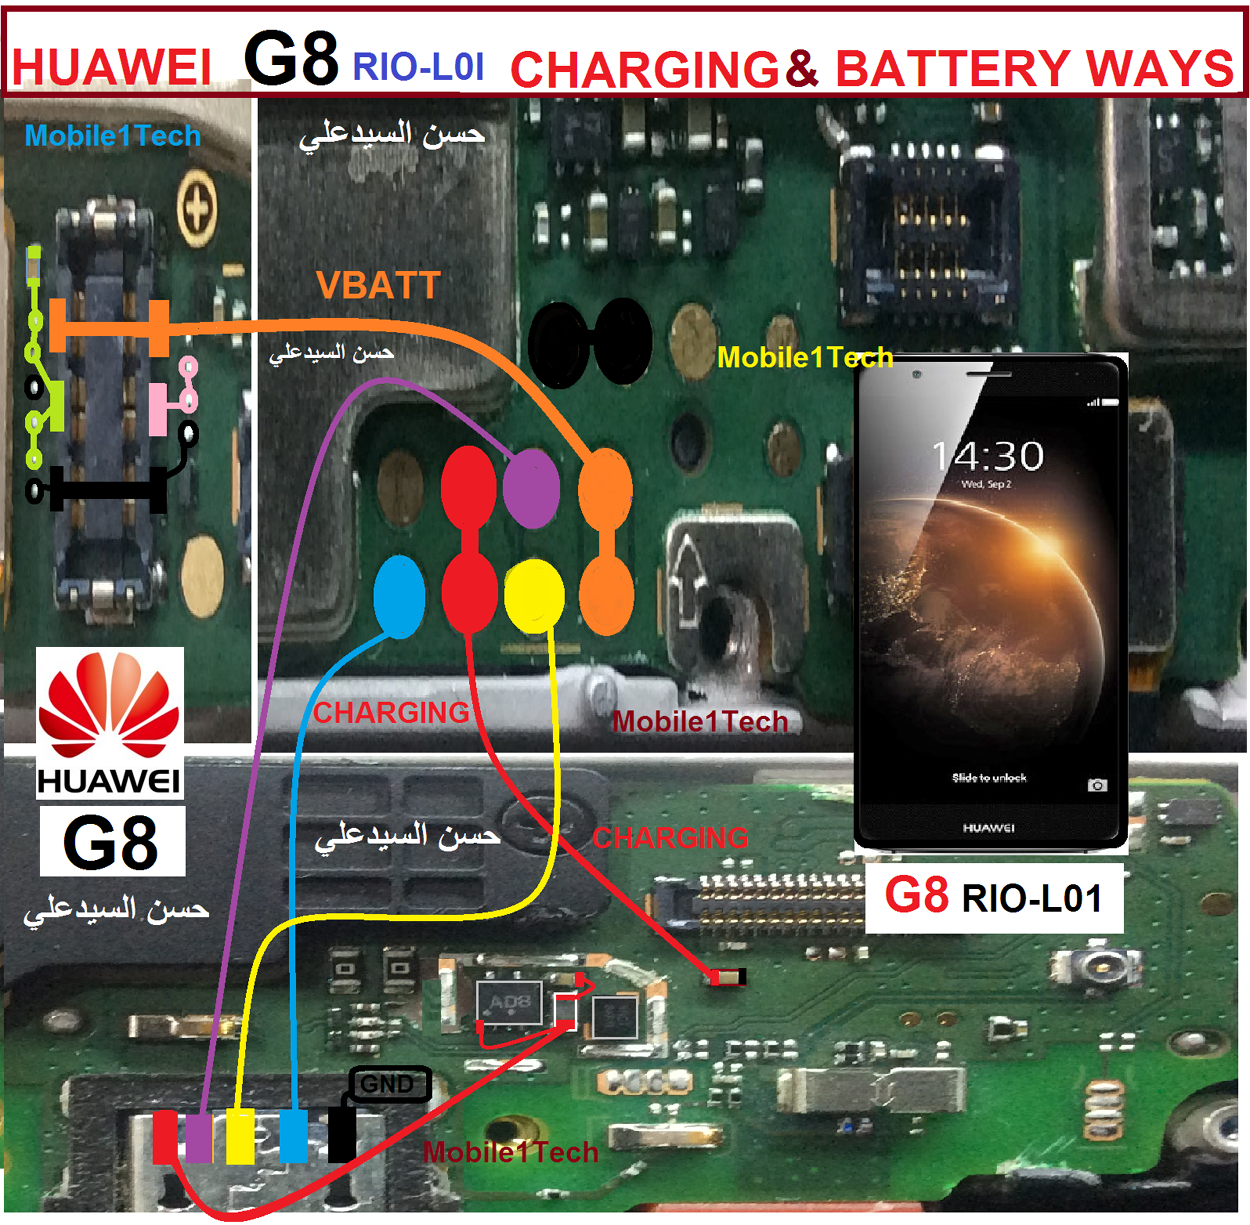 Huawei G8 Usb Charging Problem Solution Jumper Ways | Huawei